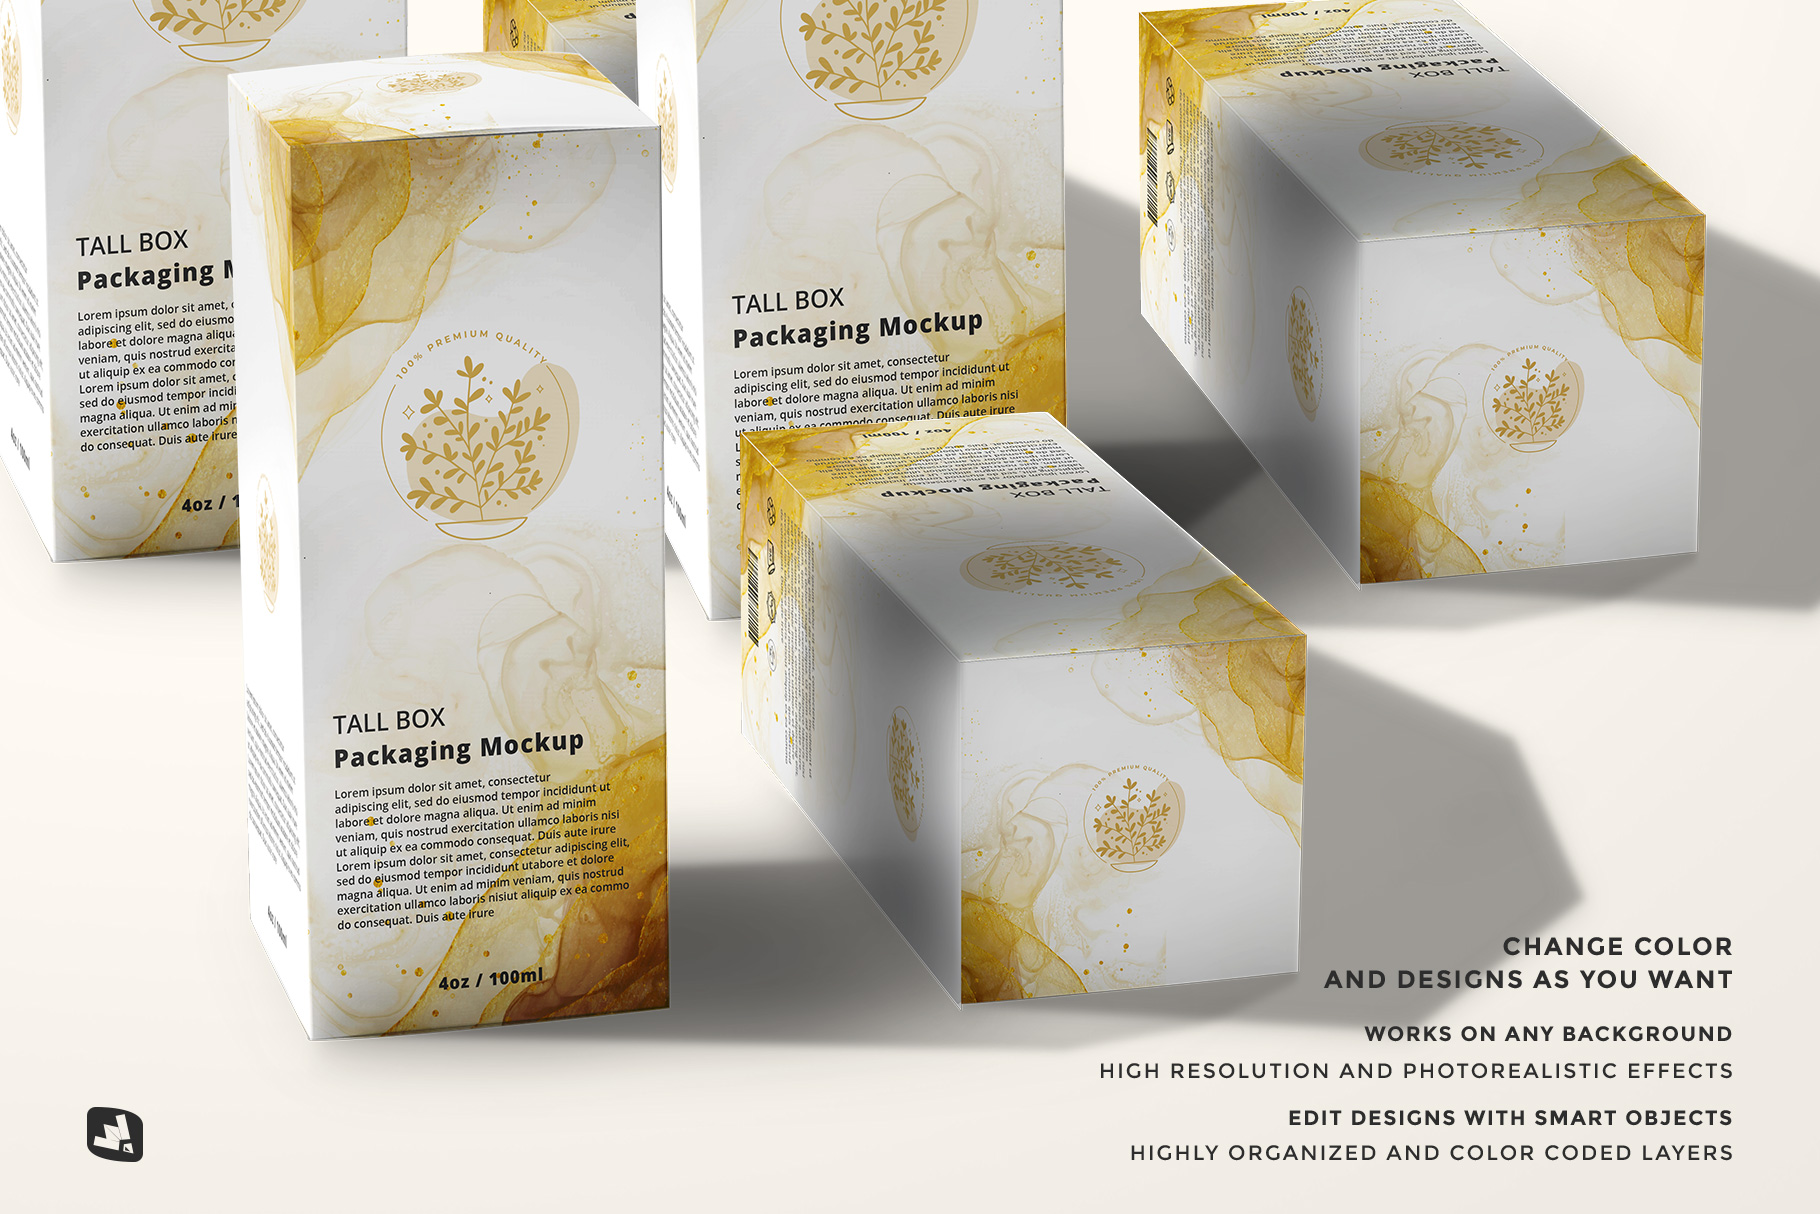 features of the set of tall box packaging mockup